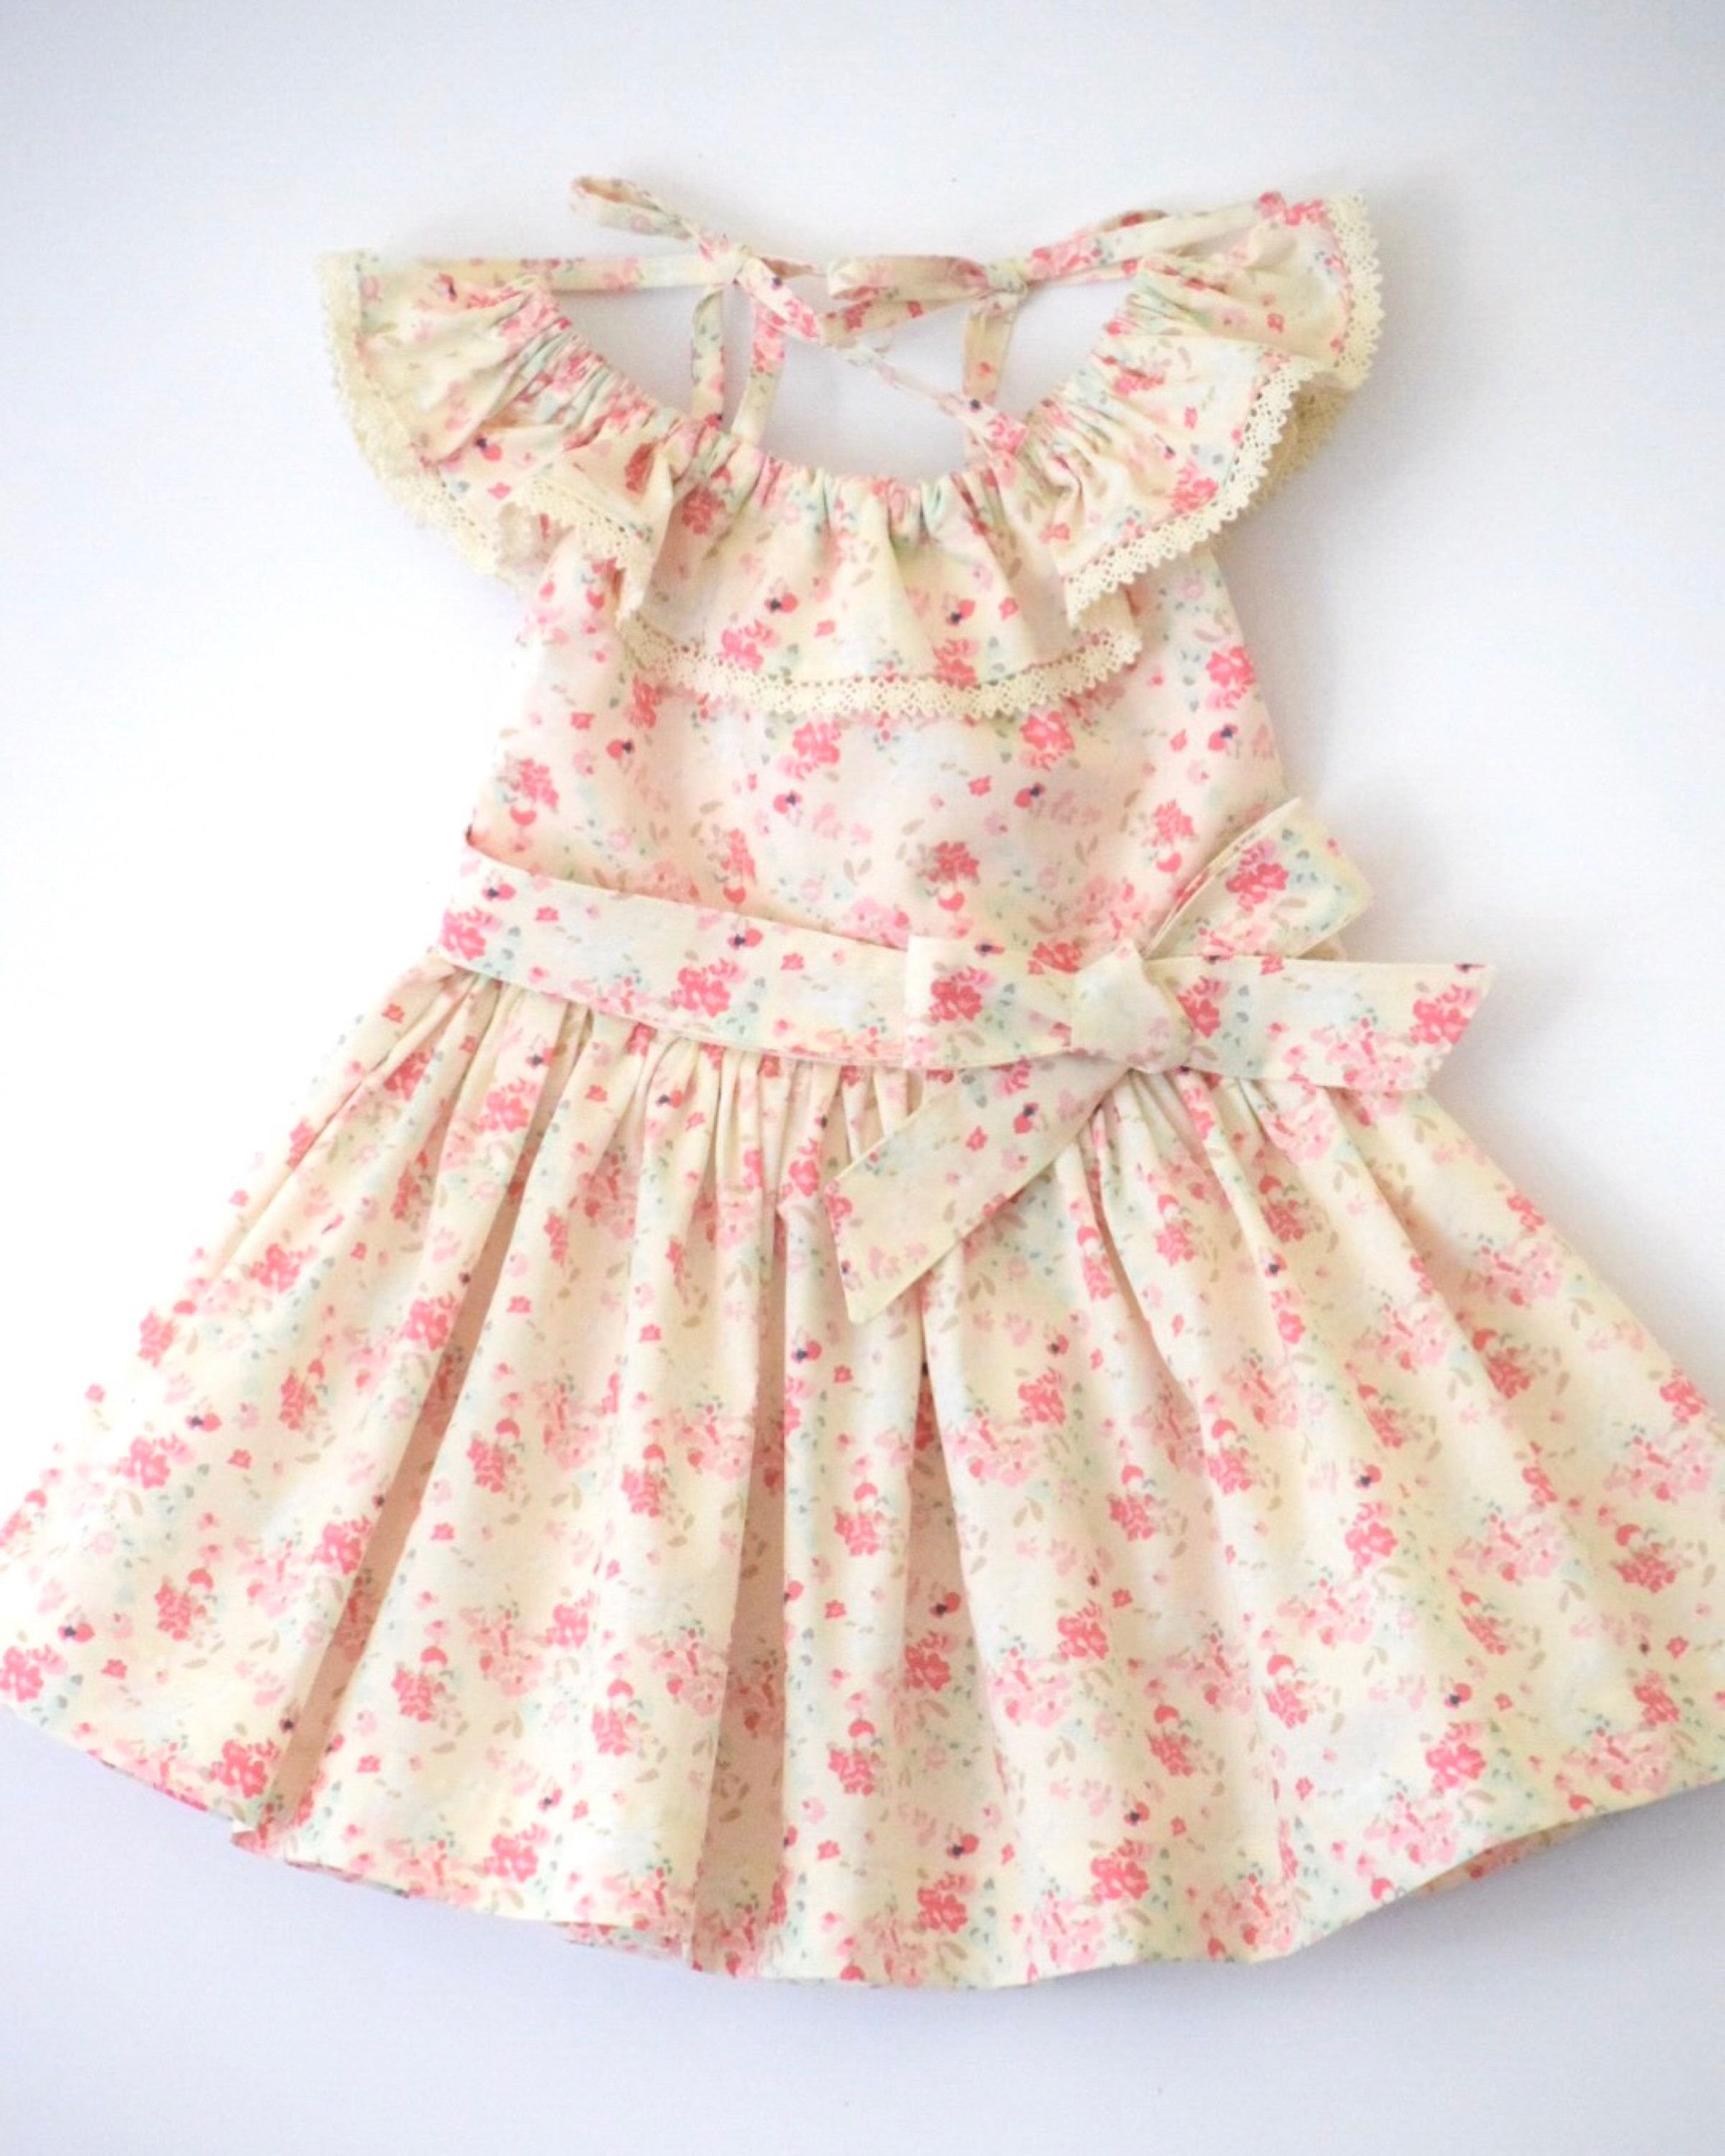 Spring girls dresses photo exclusive photo